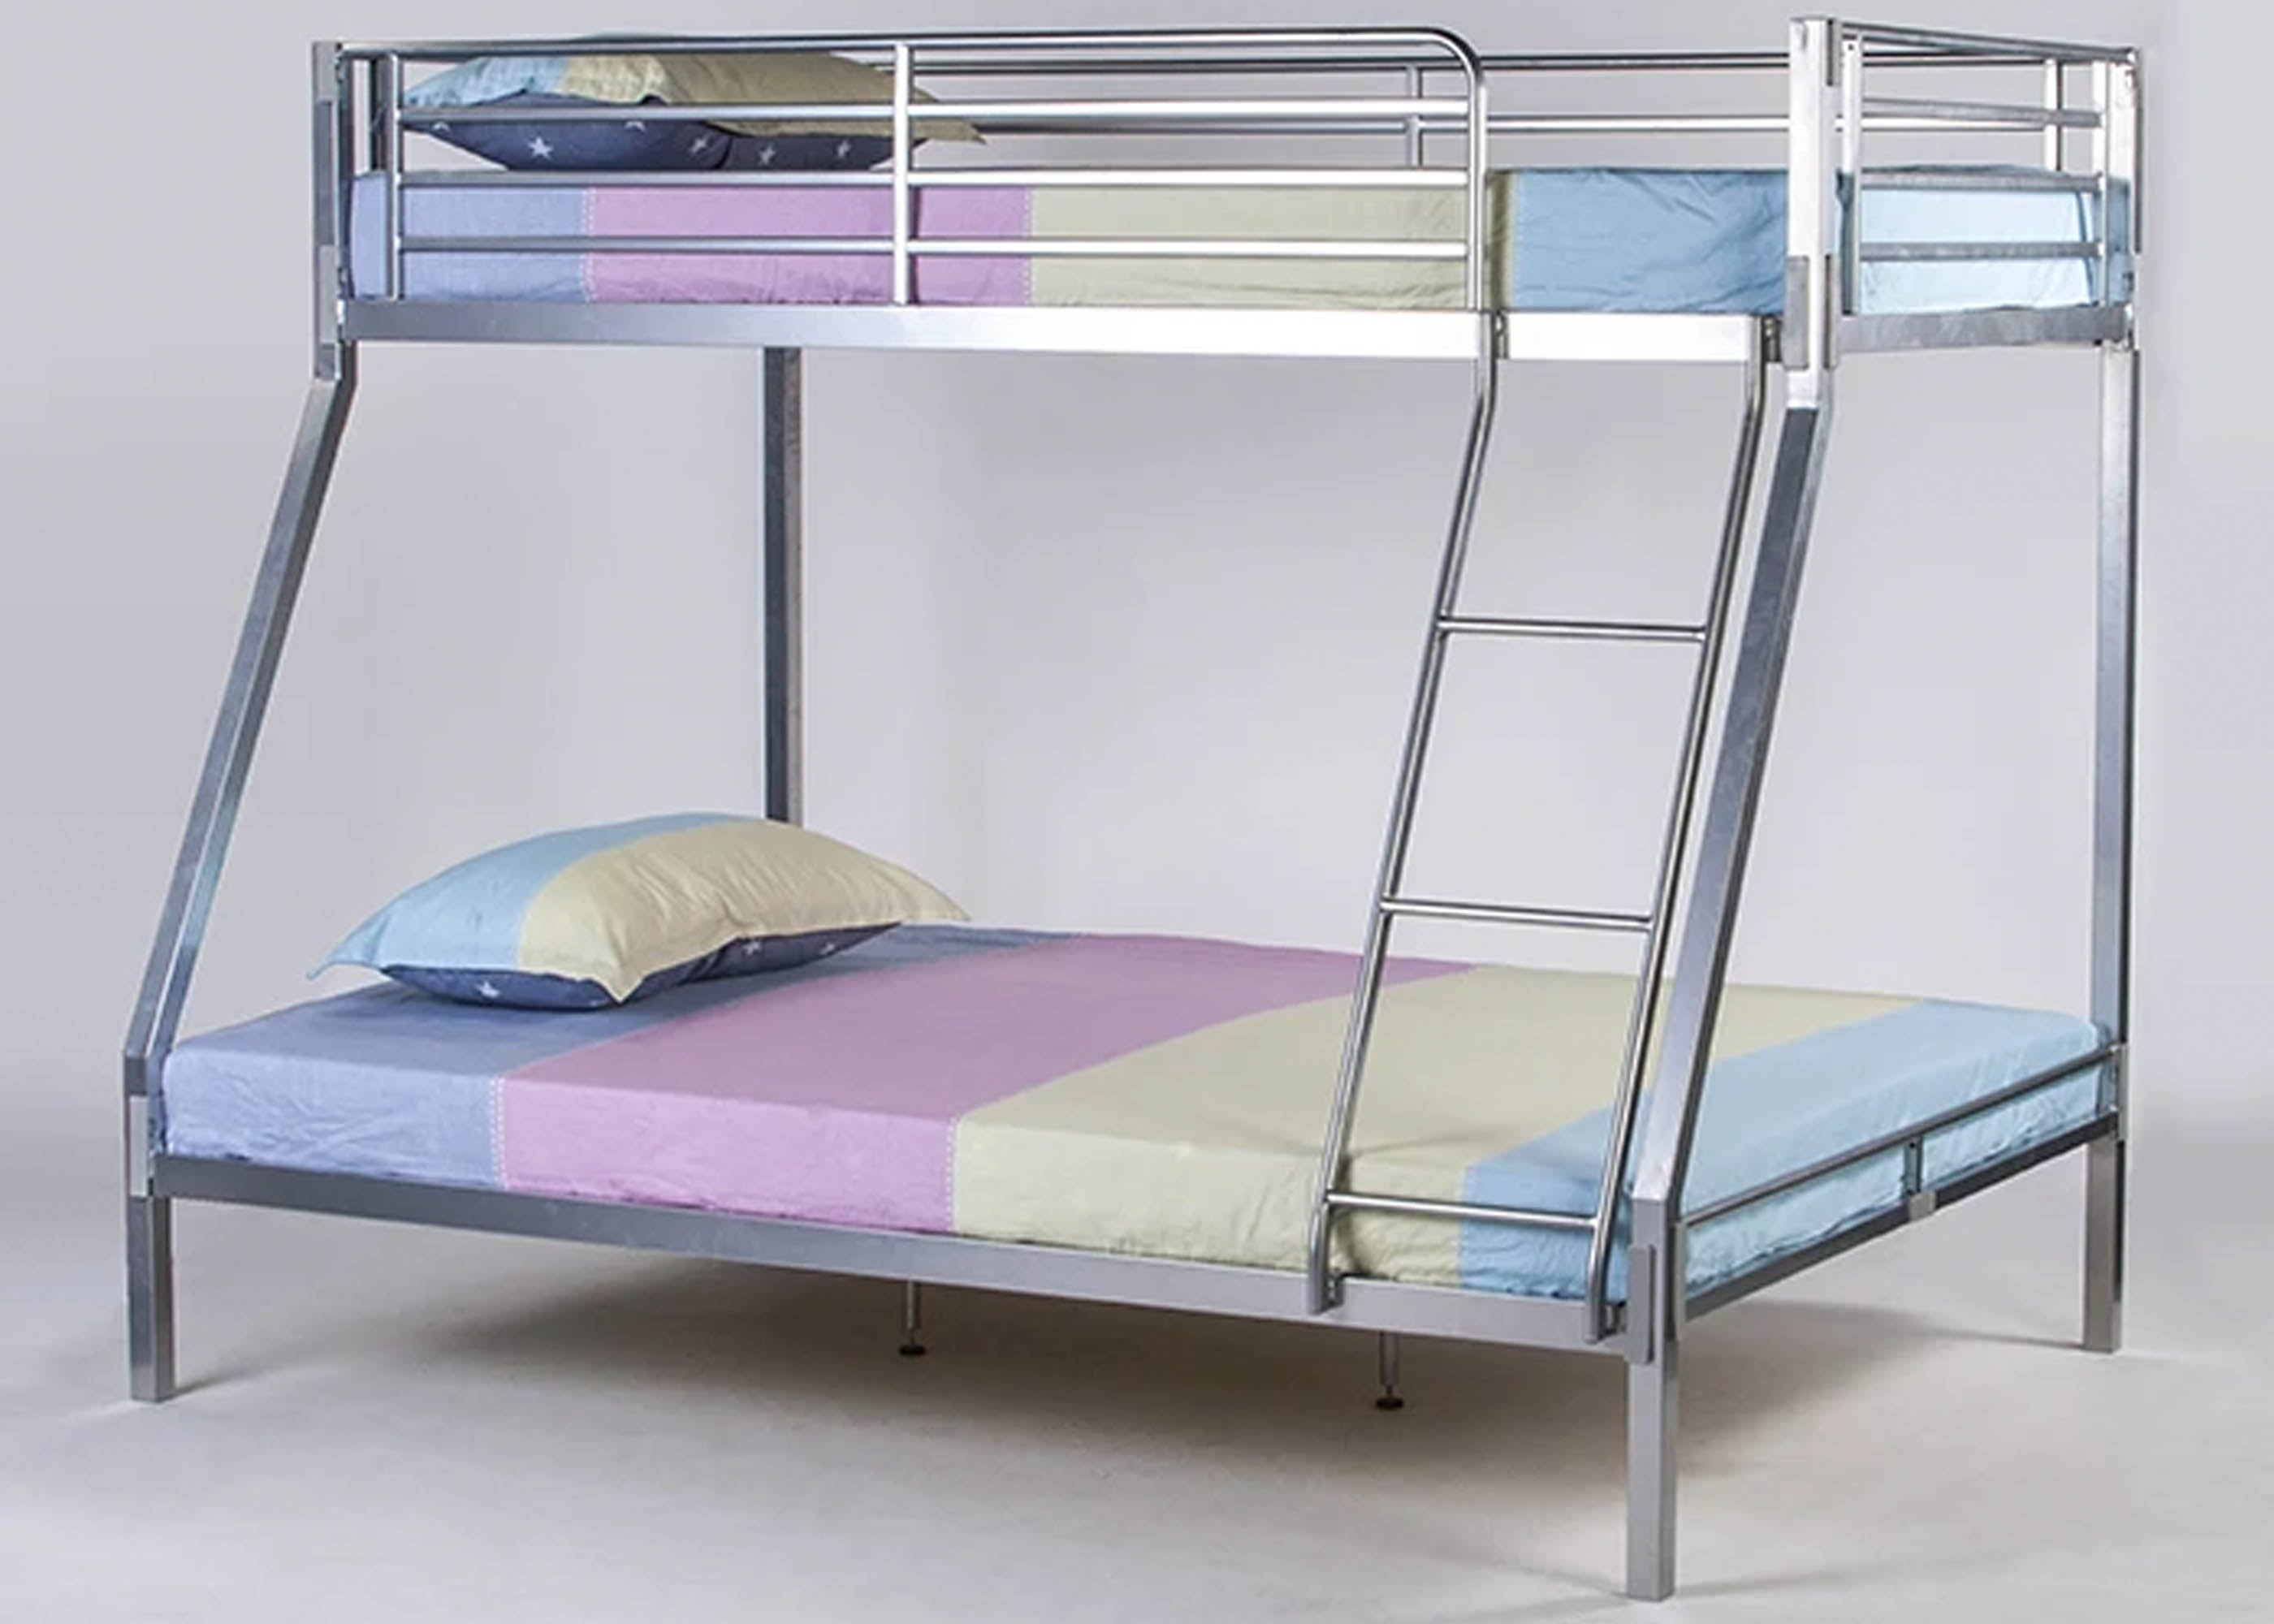 Strong Metal Triple Bunk Bed Mattress Reinforced Beds